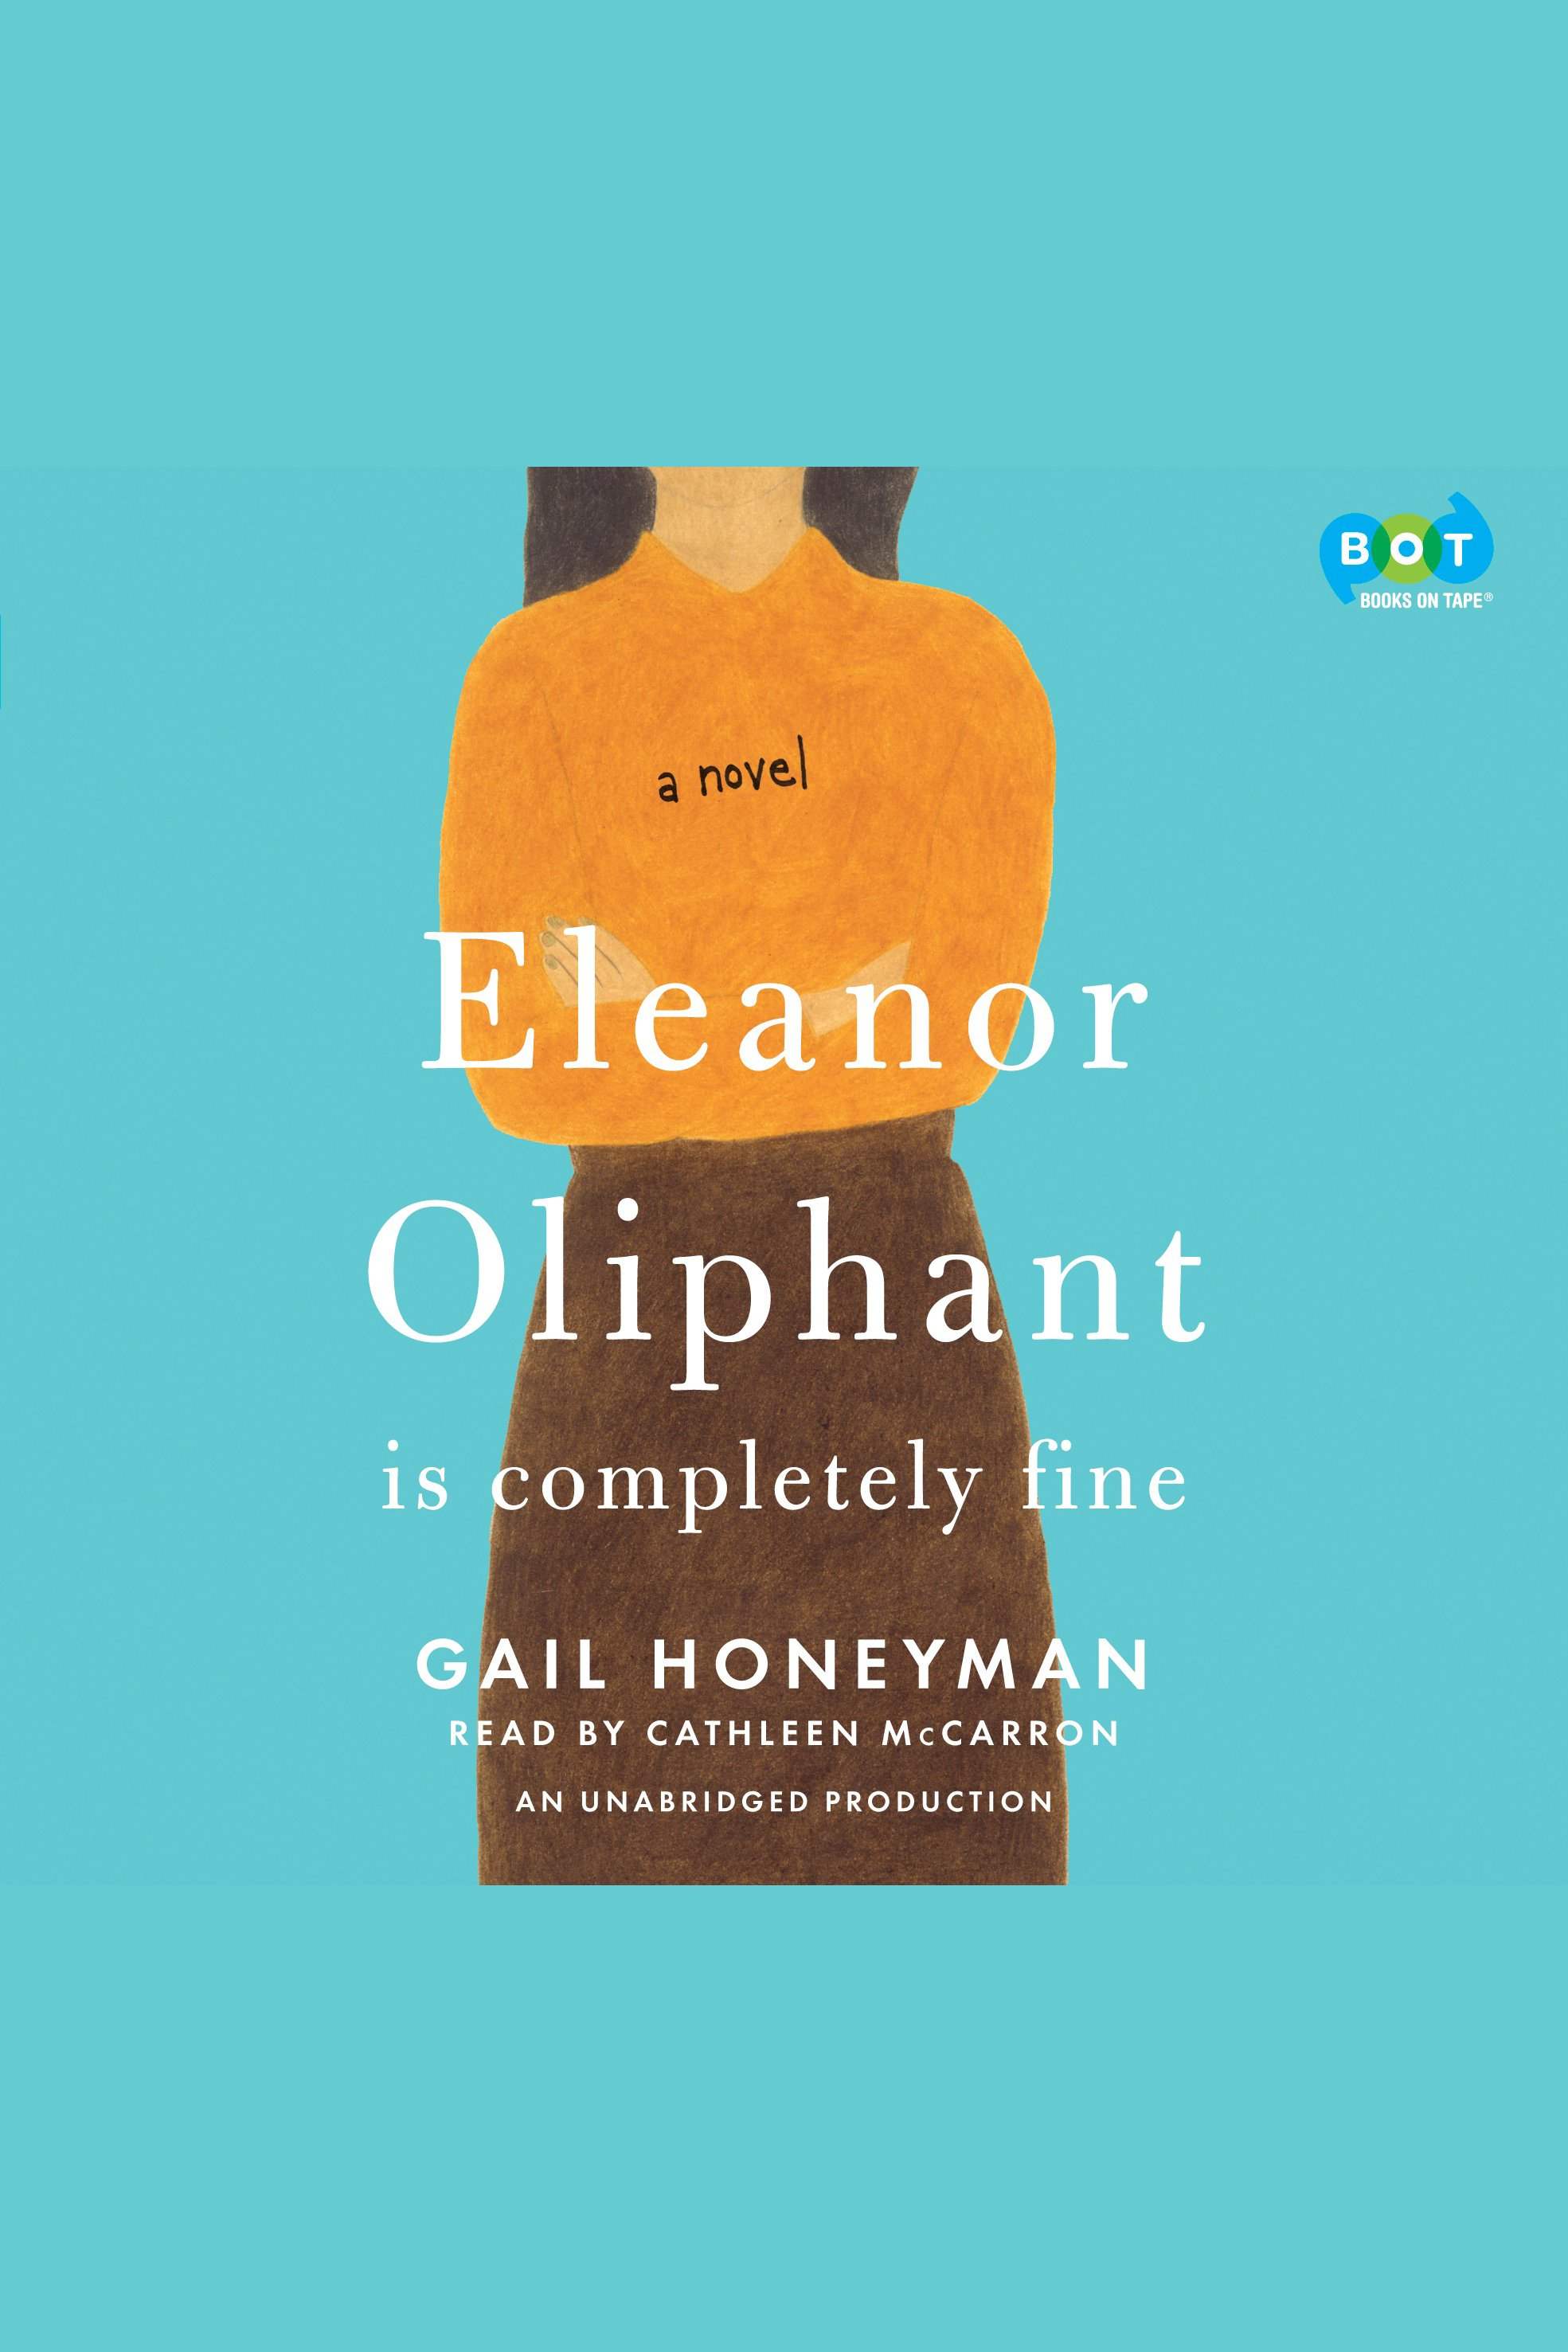 Eleanor Oliphant is completely fine [AudioEbook] : a novel